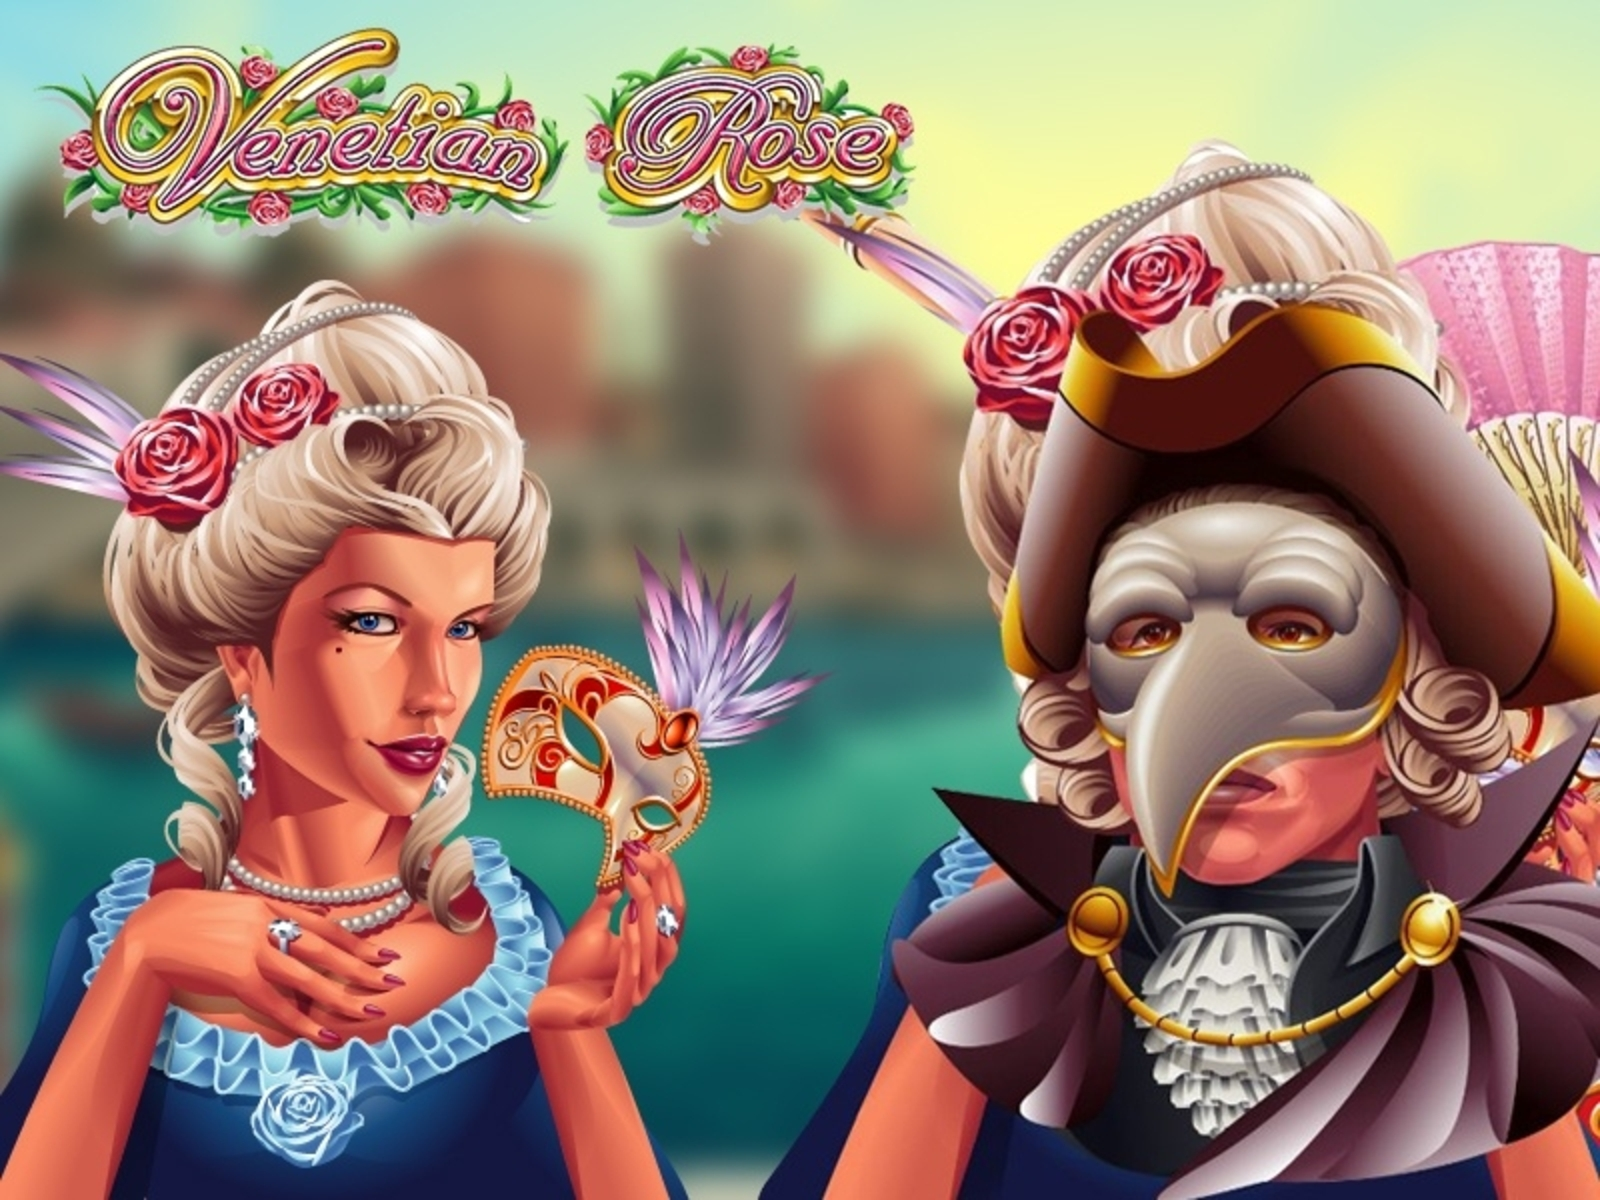 The Venetian Rose Online Slot Demo Game by NextGen